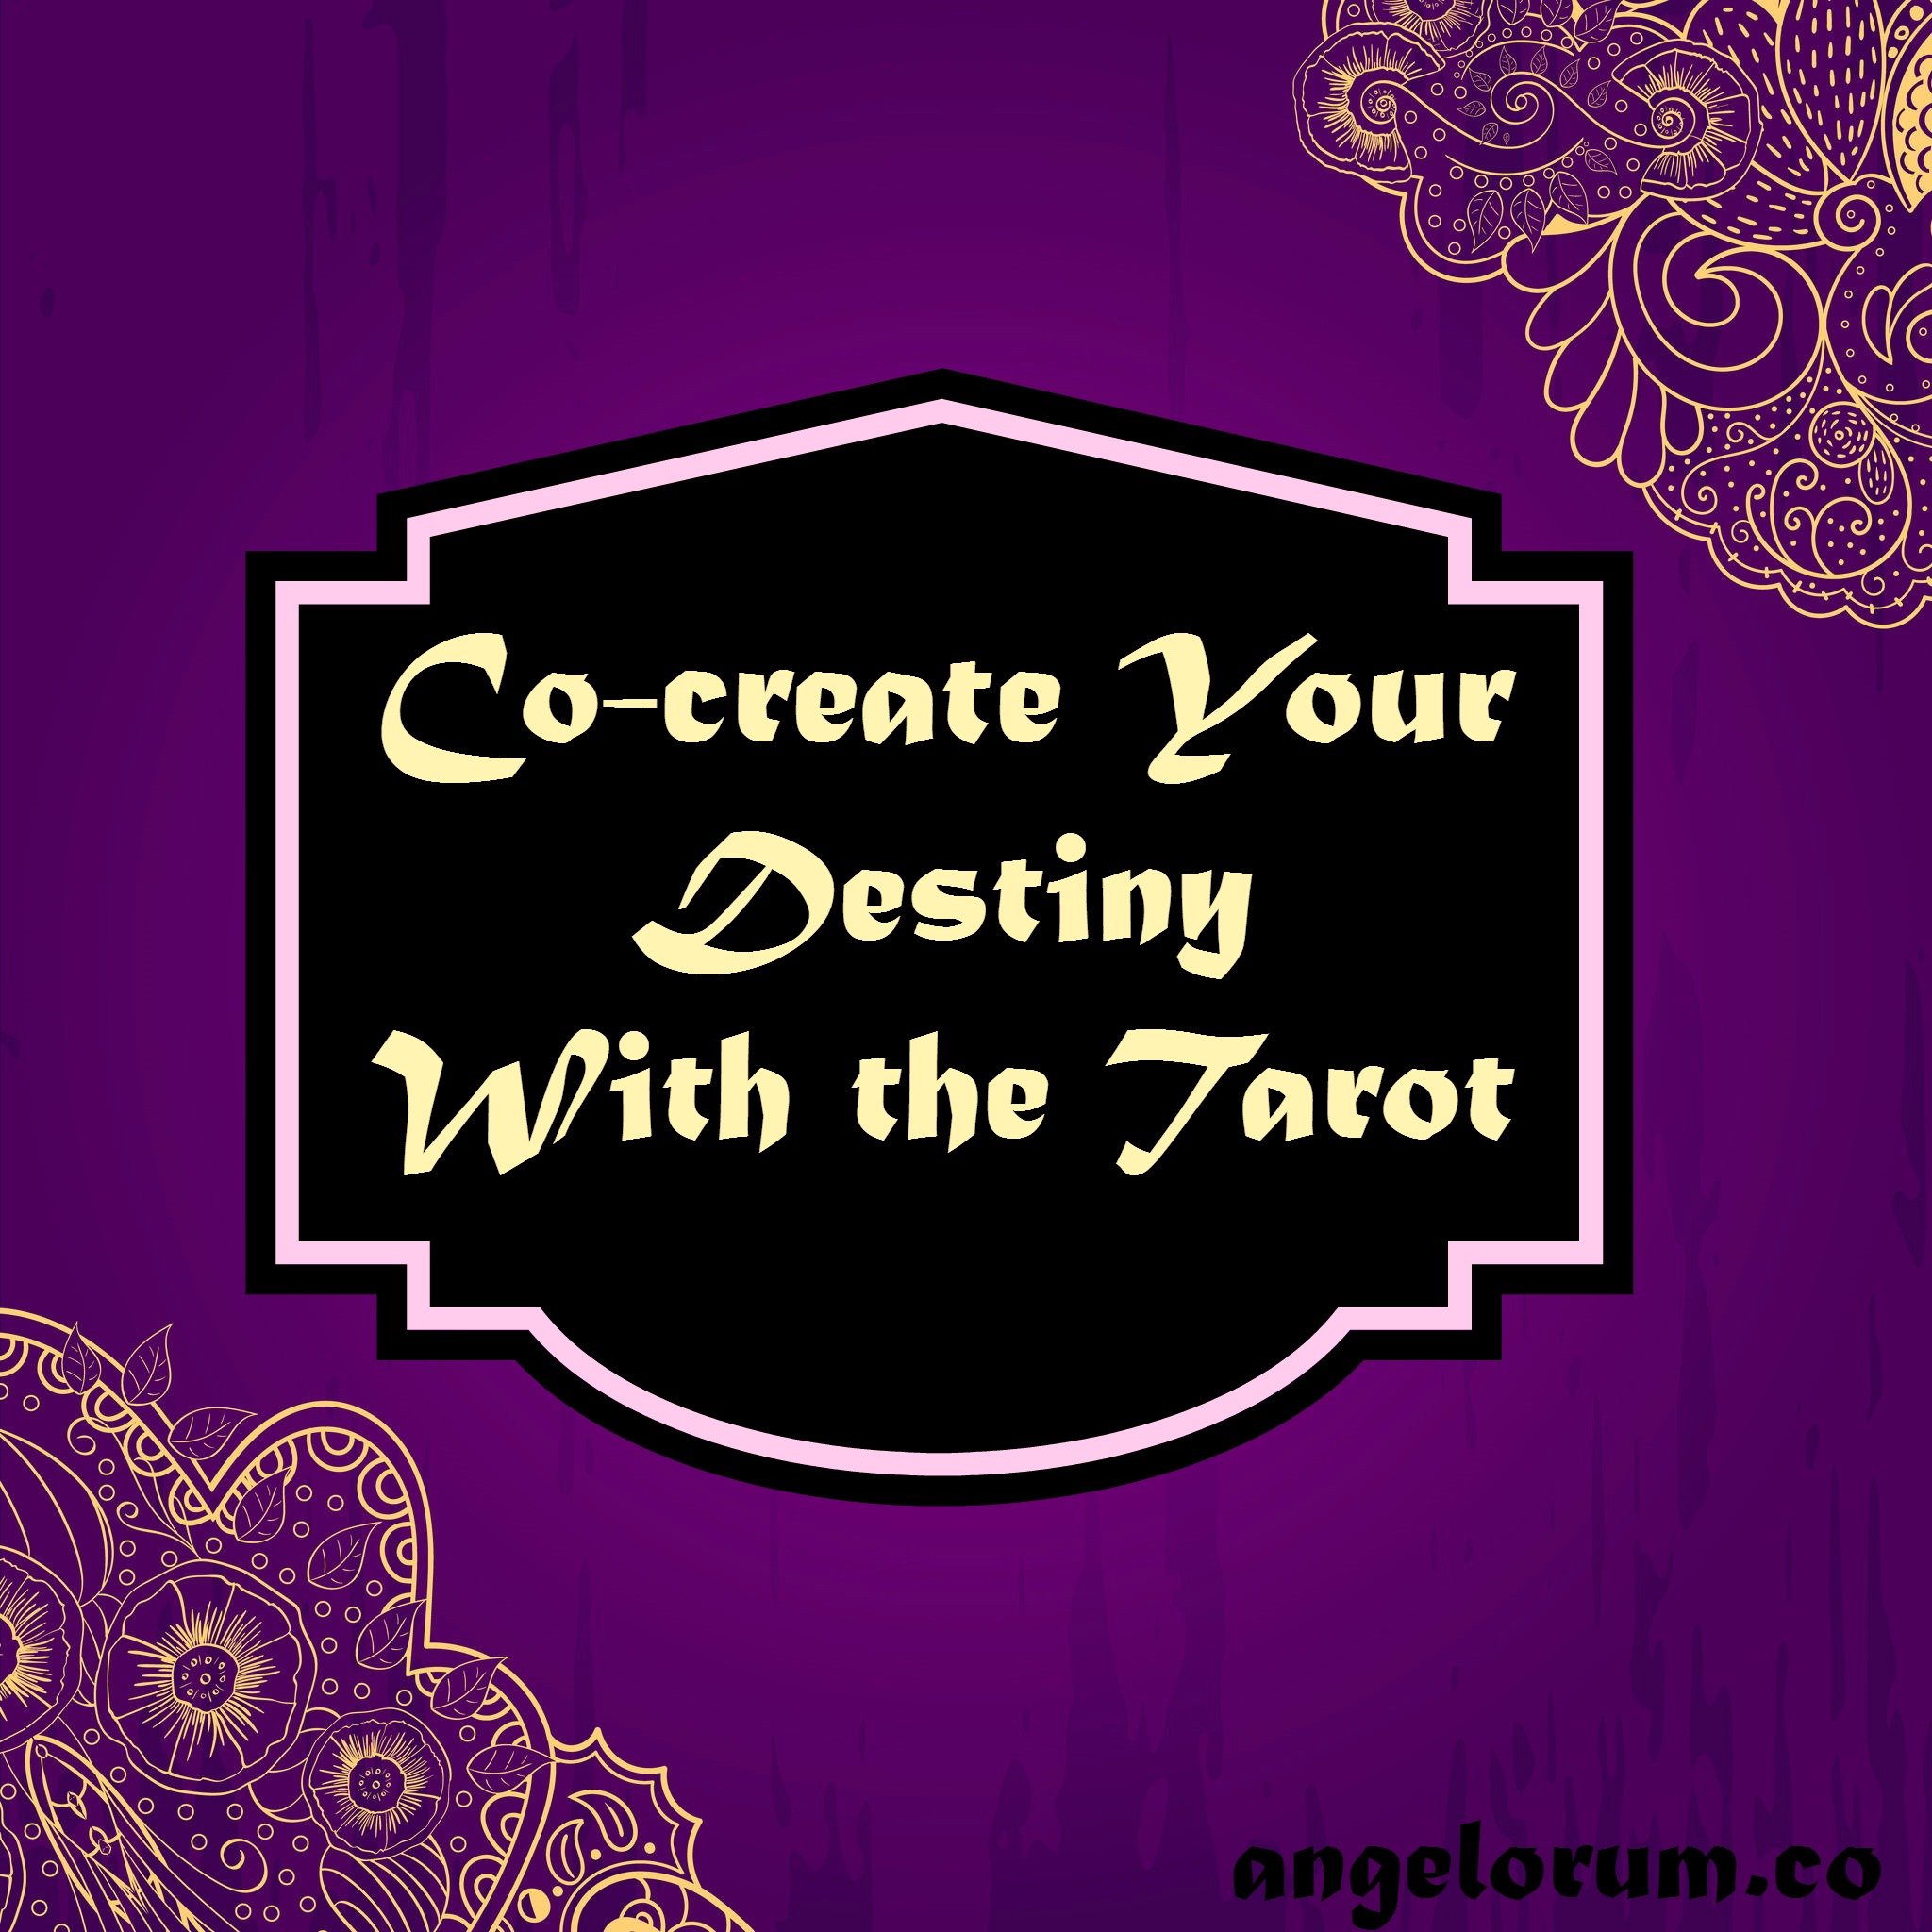 co-create your destiny with their tarot